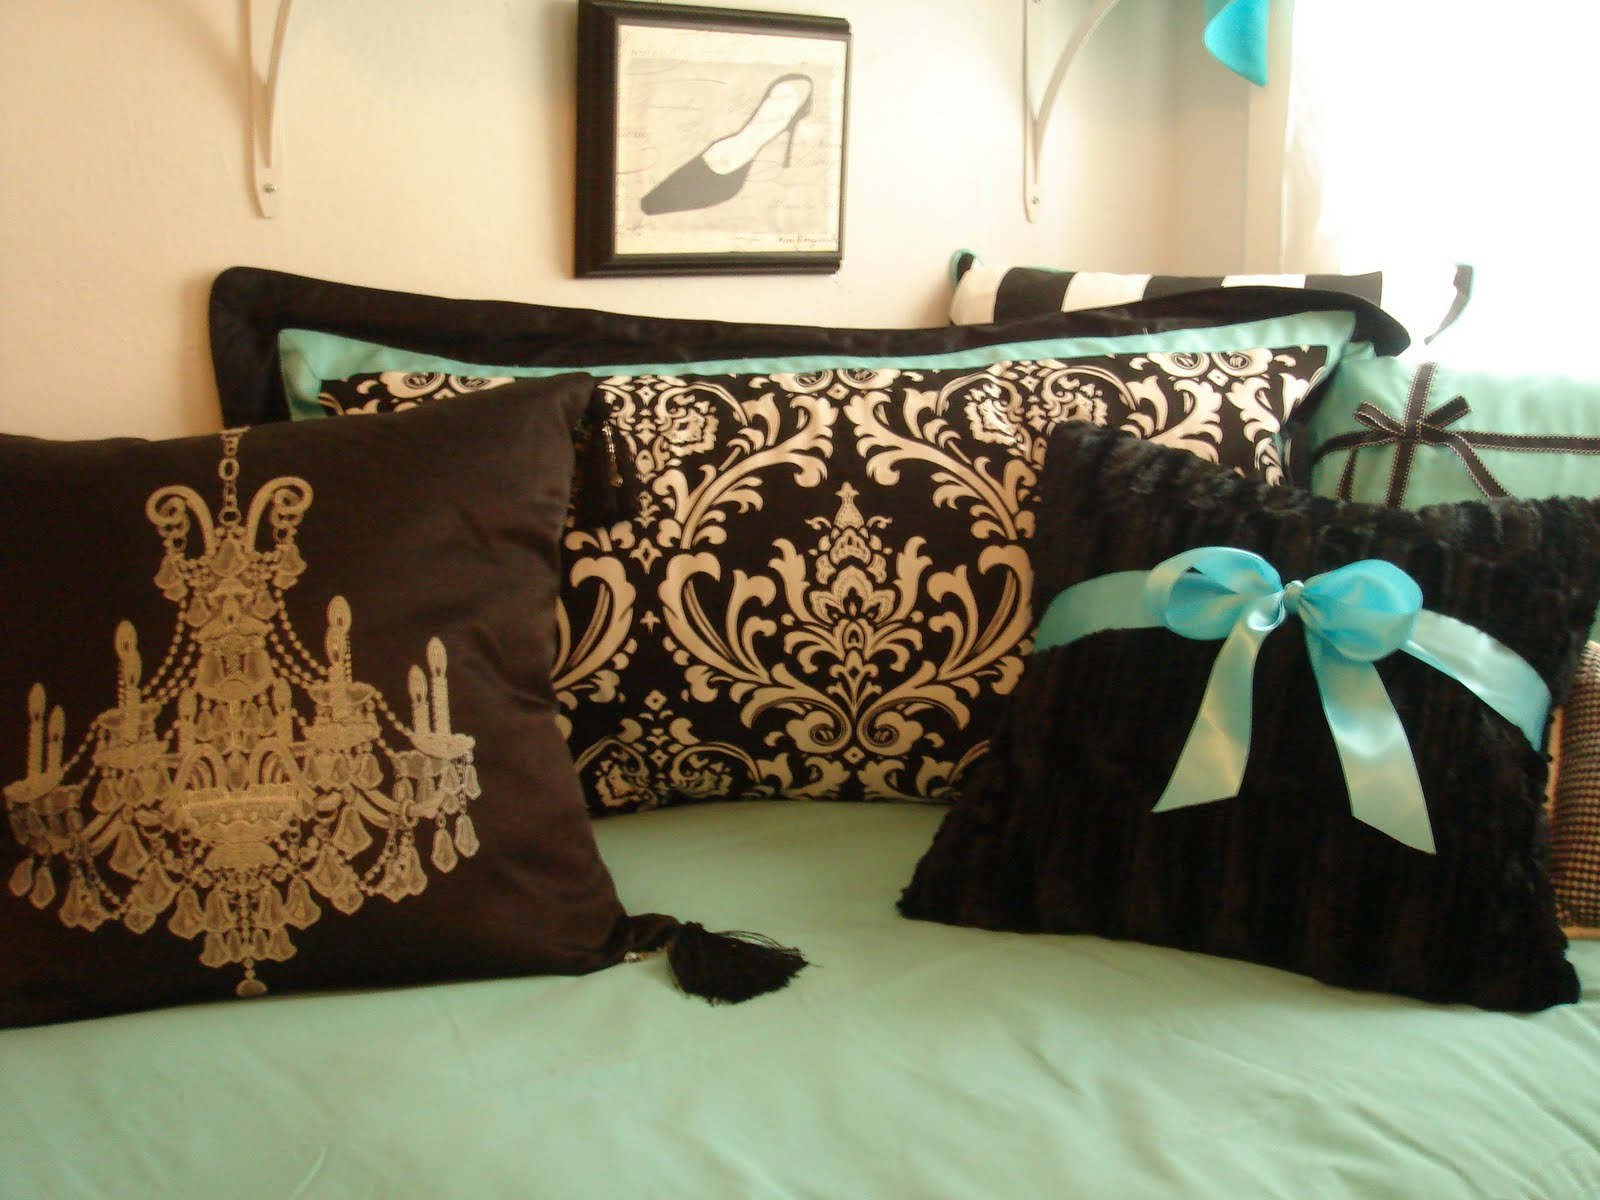 Dorm Bedding Decor Decor 2 Ur Door Tiffany Style Bedding Dorm Room Bedding And